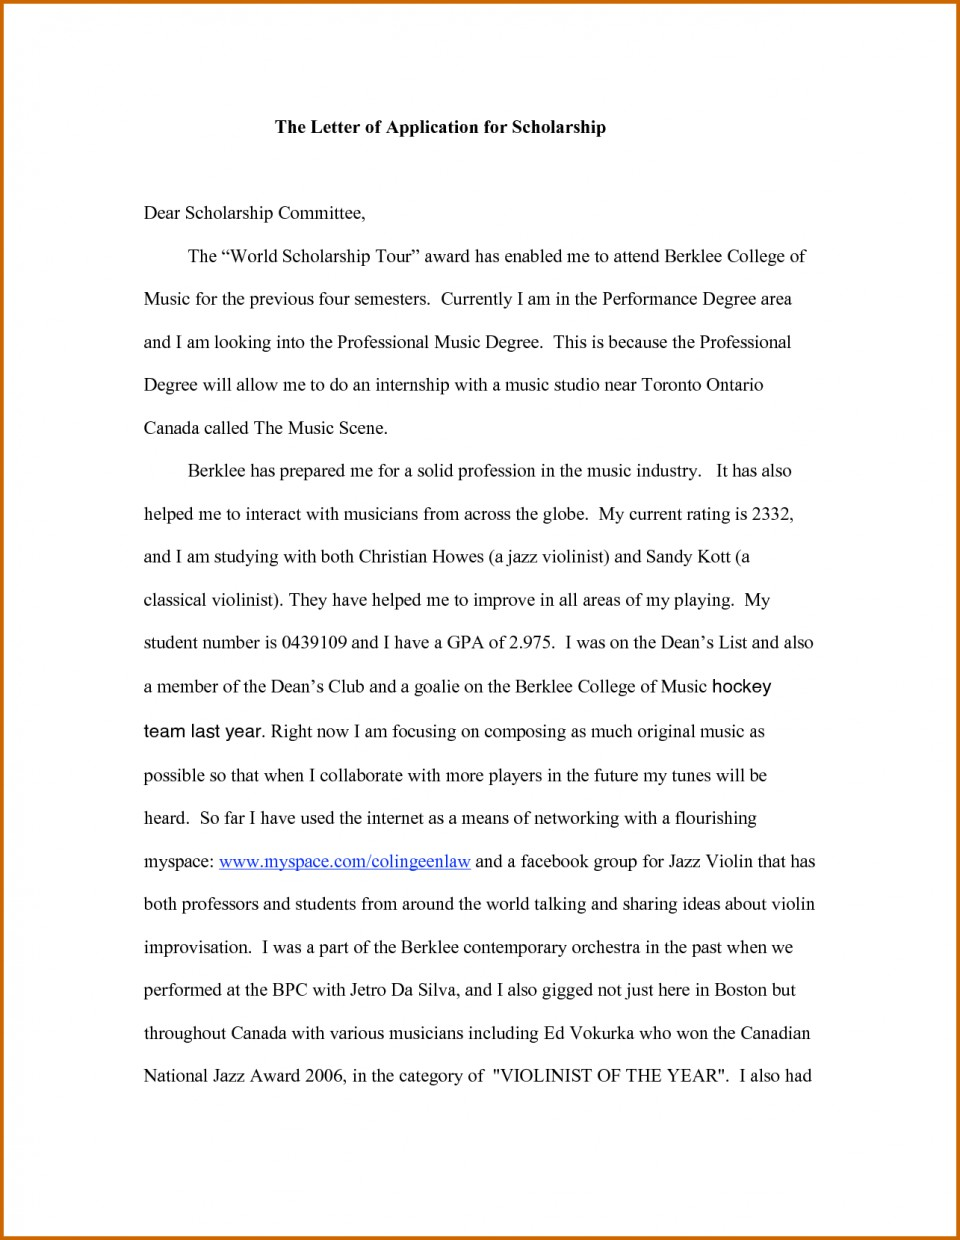 009 Essay Example How To Write Application For Scholarship Unusual Essays Tips 2017 Flinn Prompts Gilman 960